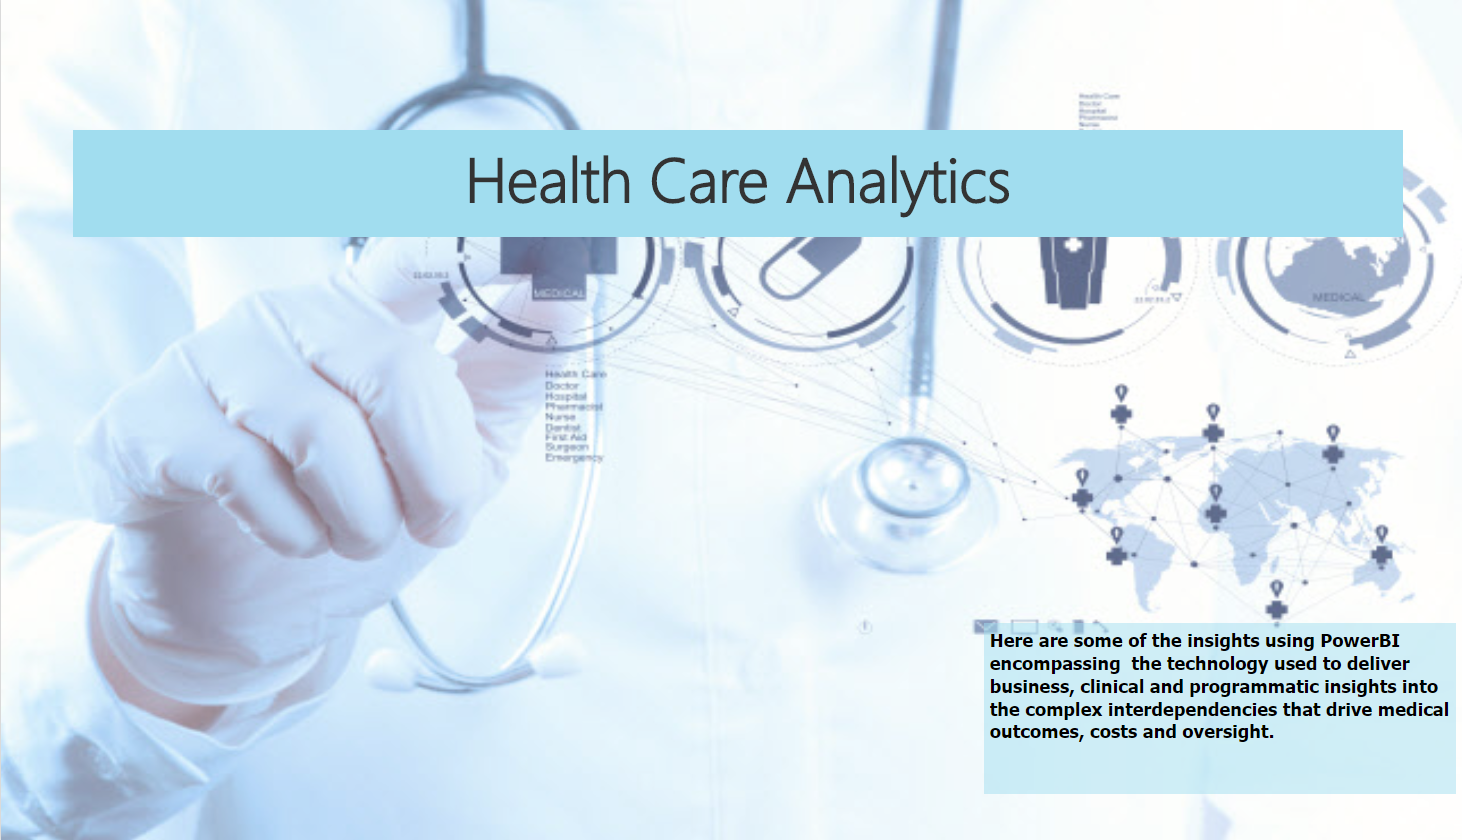 Heath Care Analytics